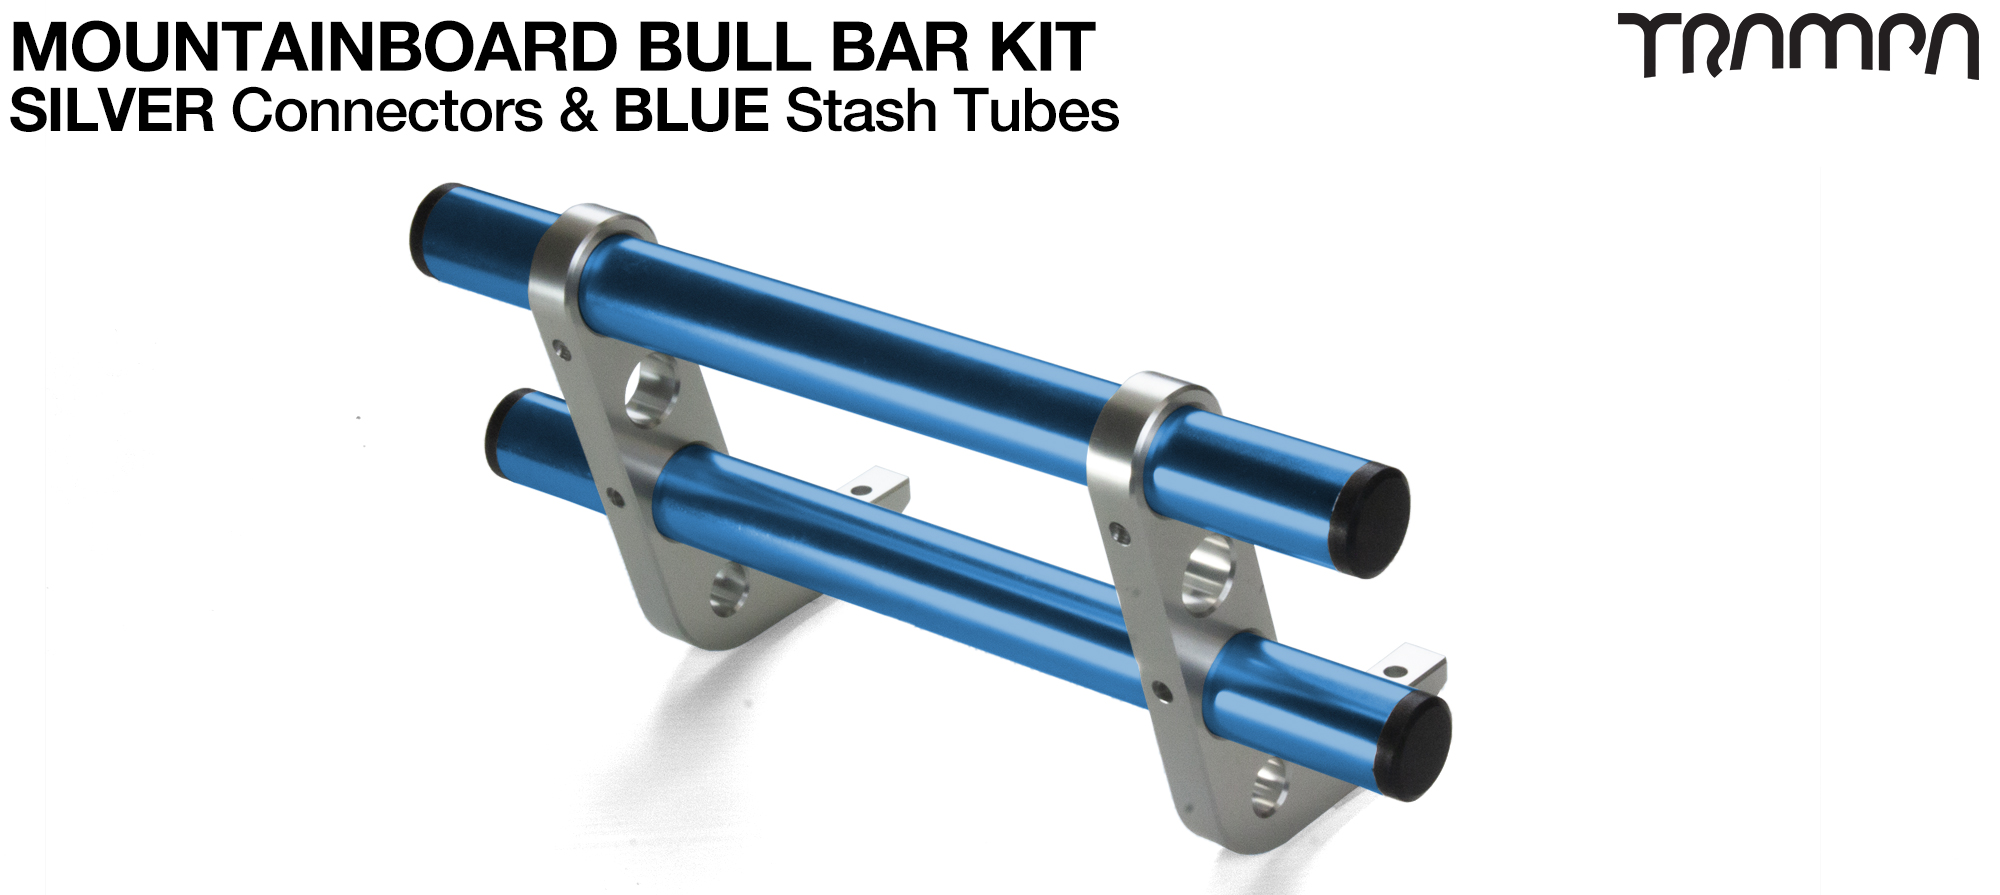 SILVER Uprights & BLUE Crossbar BULL BARS for MOUNTAINBOARDS T6 Heat Treated CNC'd Aluminium Uprights, with Hollow Aluminium Stash Tubes with Rubber end bungs